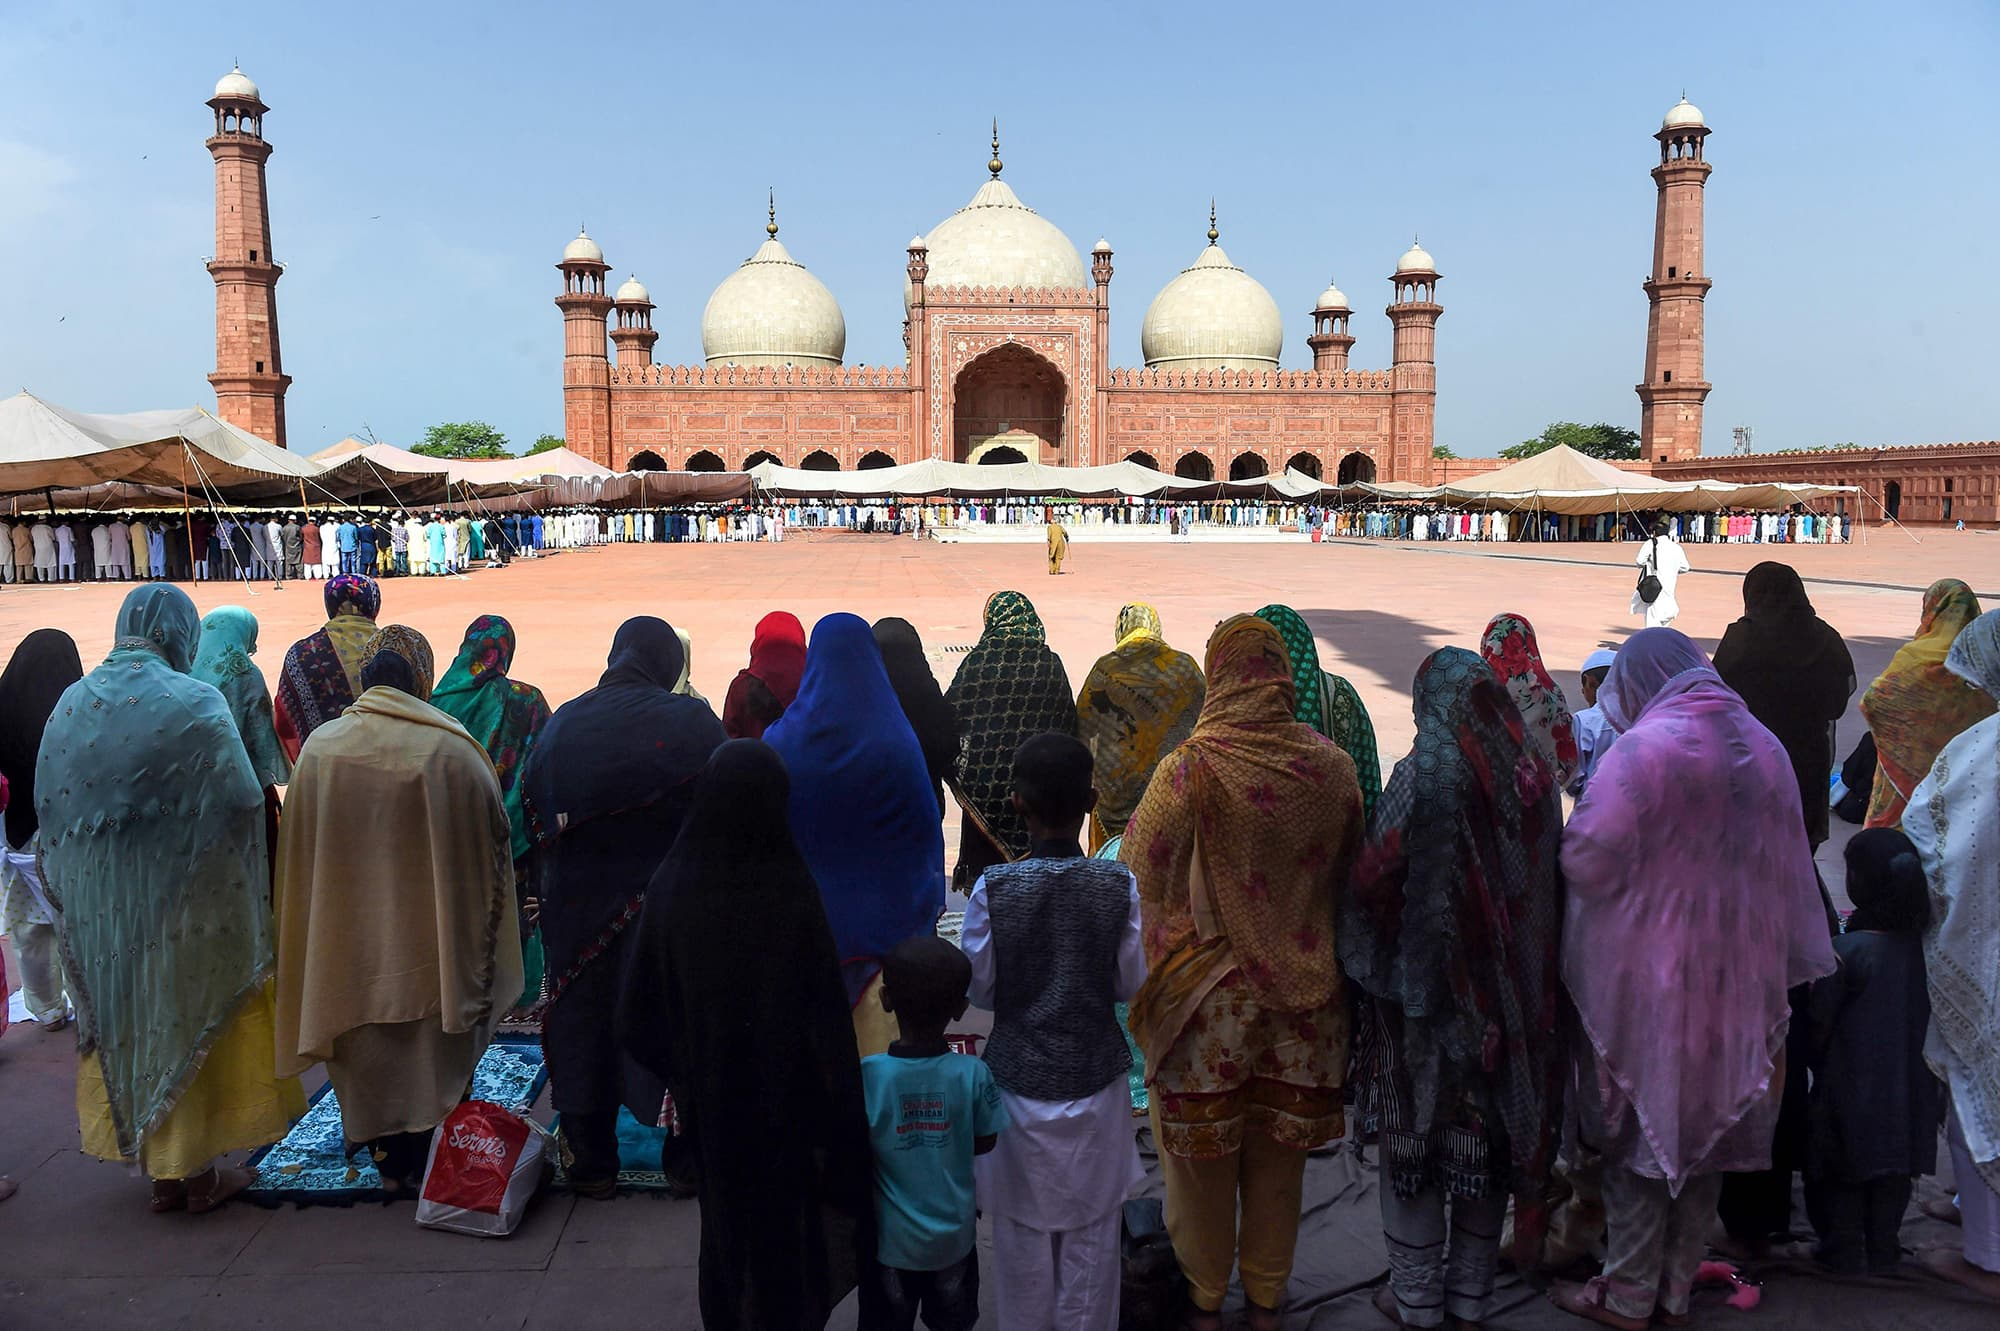 Worshippers offer prayers at the Badshahi Mosque in Lahore. — AFP